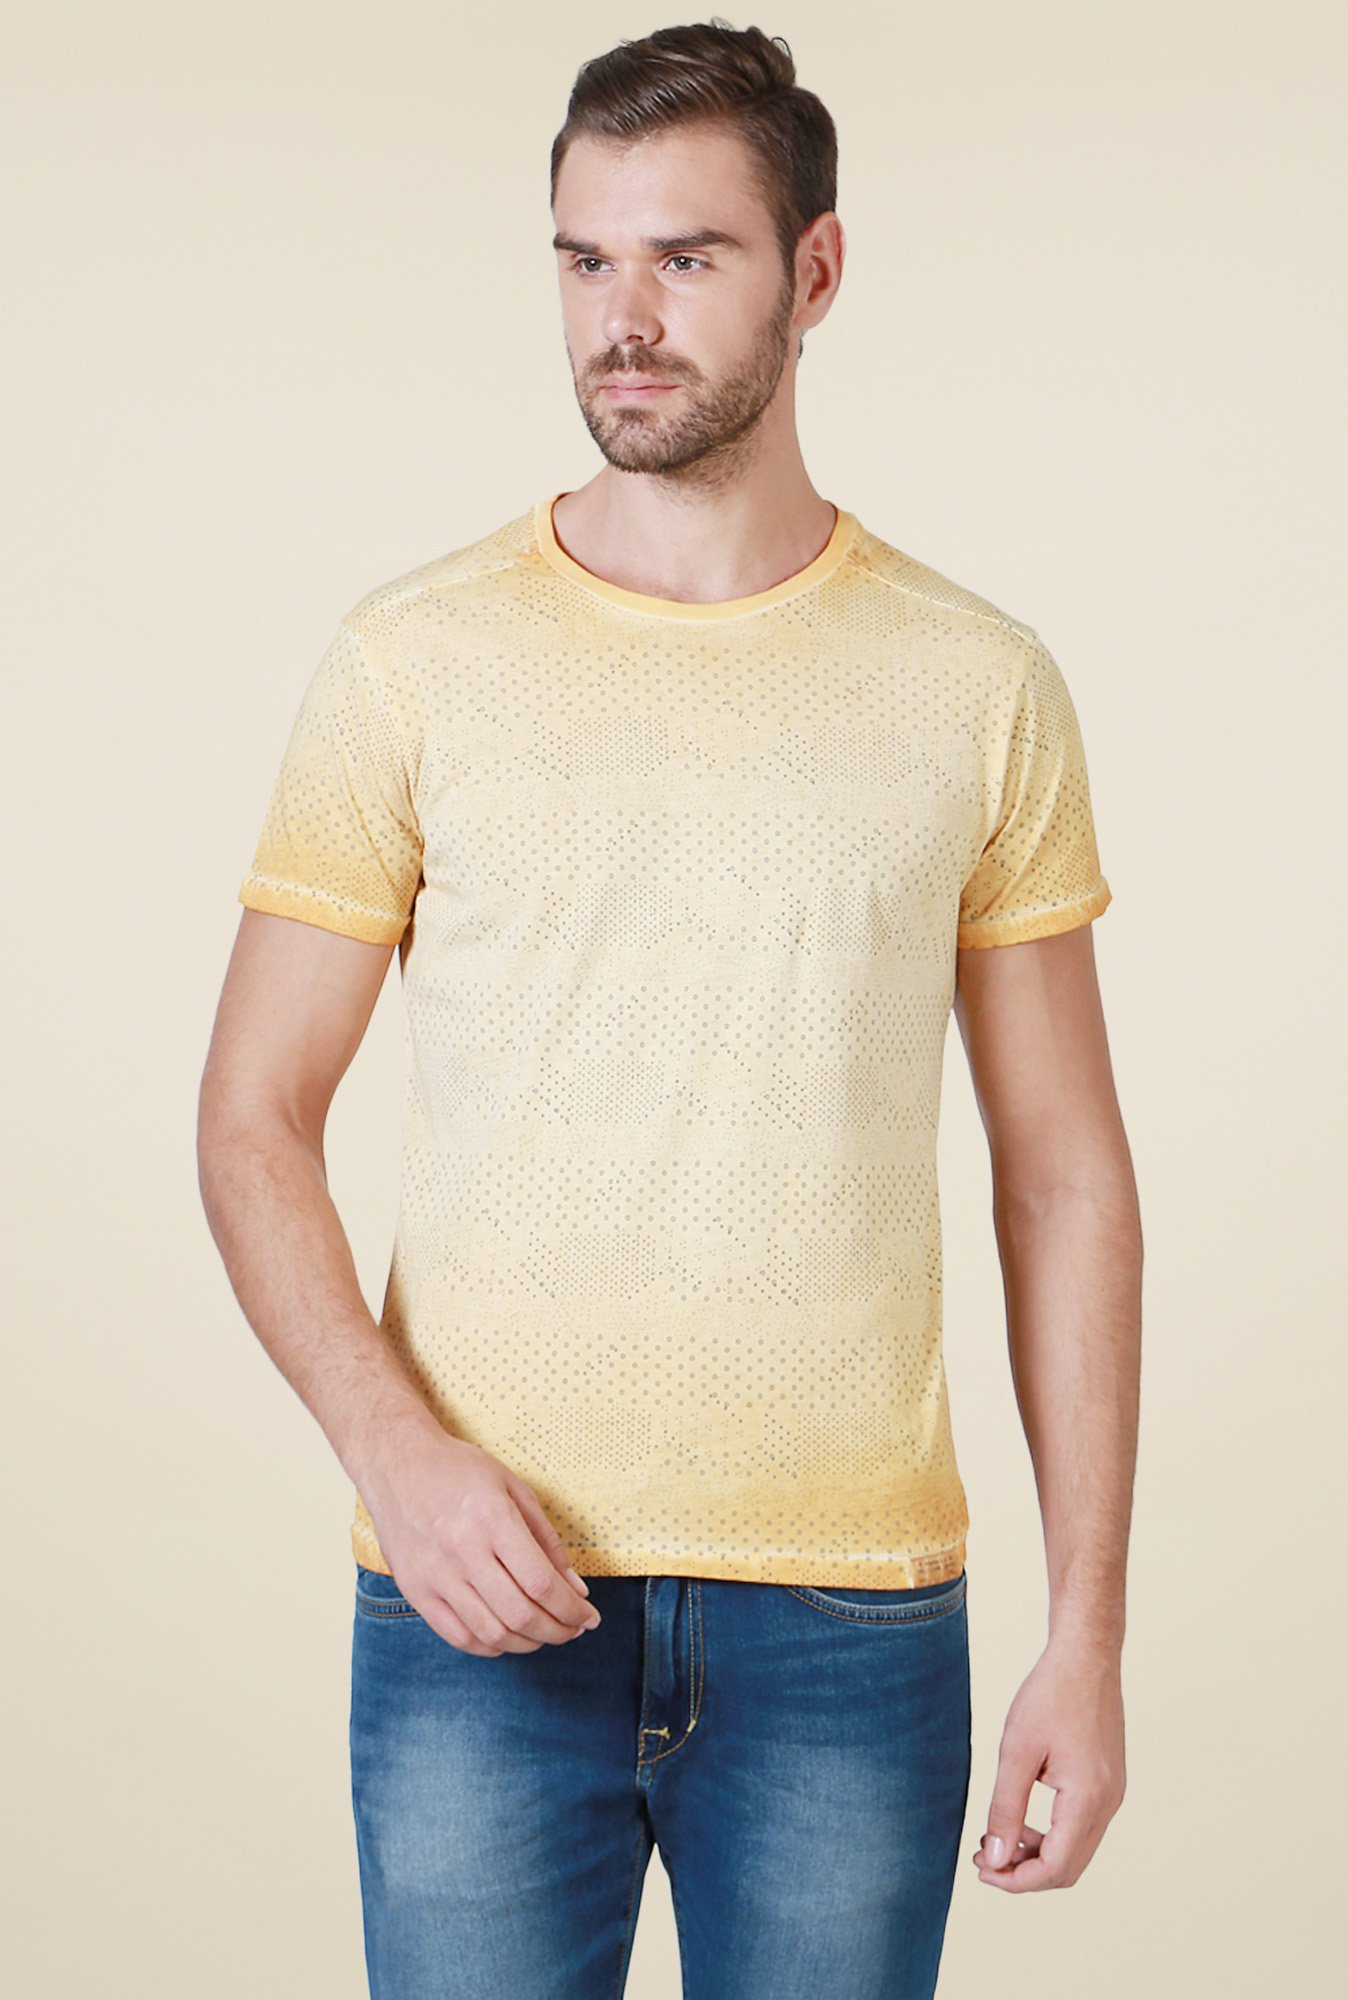 Allen Solly Yellow Printed Crew Neck Cotton T-Shirt